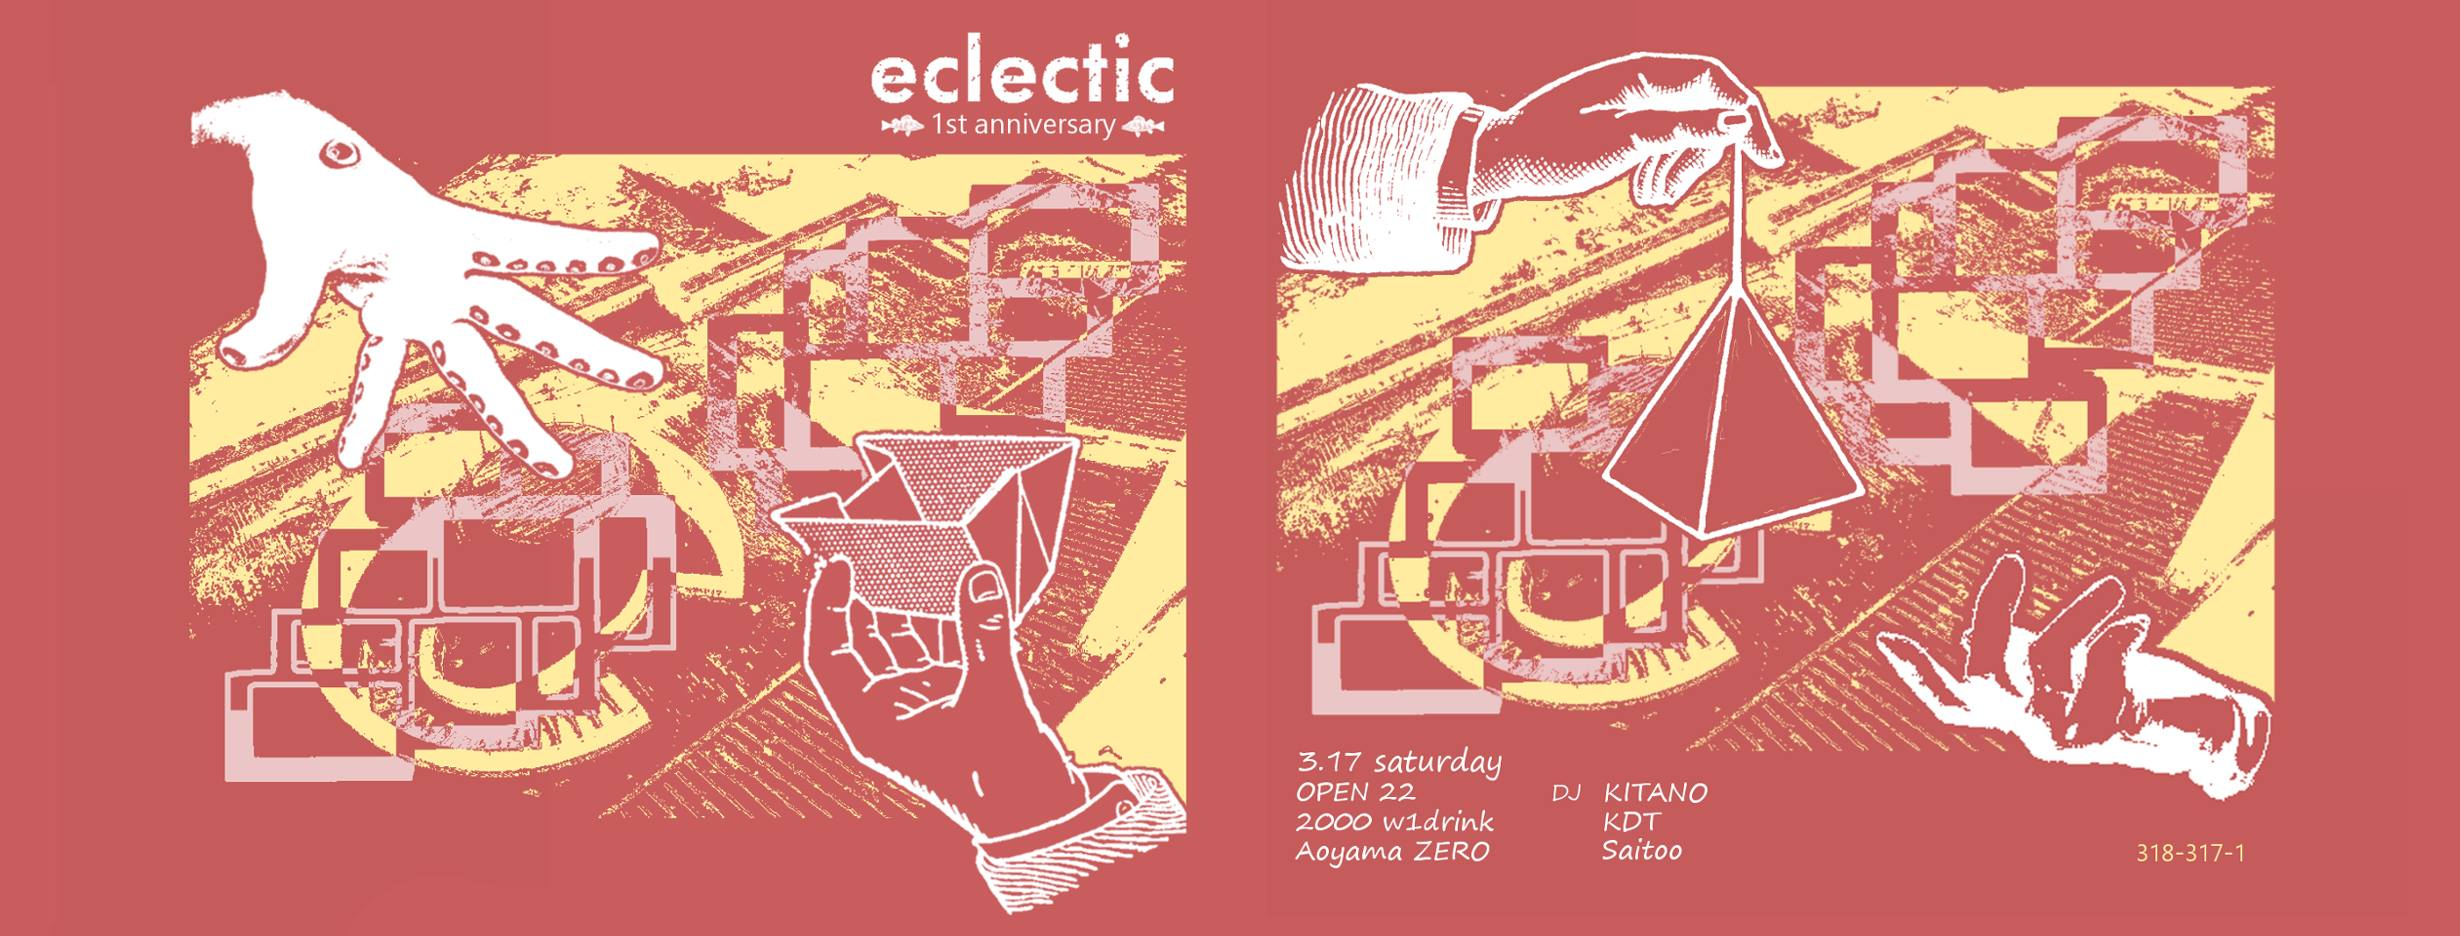 eclectic 1st anniversary